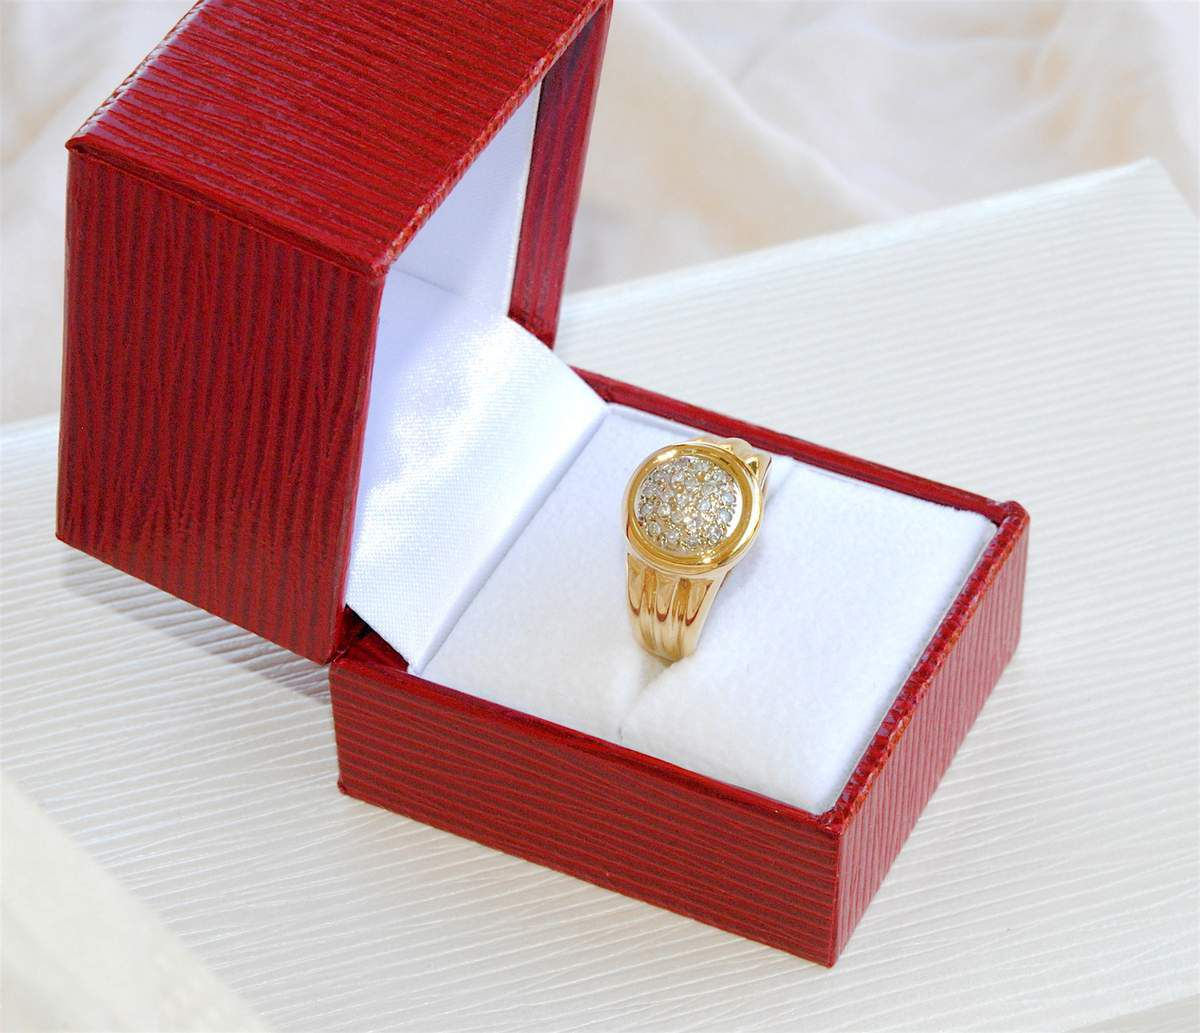 ELEGANTE BAGUE EN OR JAUNE 18 K ( 750 ) - DIAMANTS      REF / AA 939